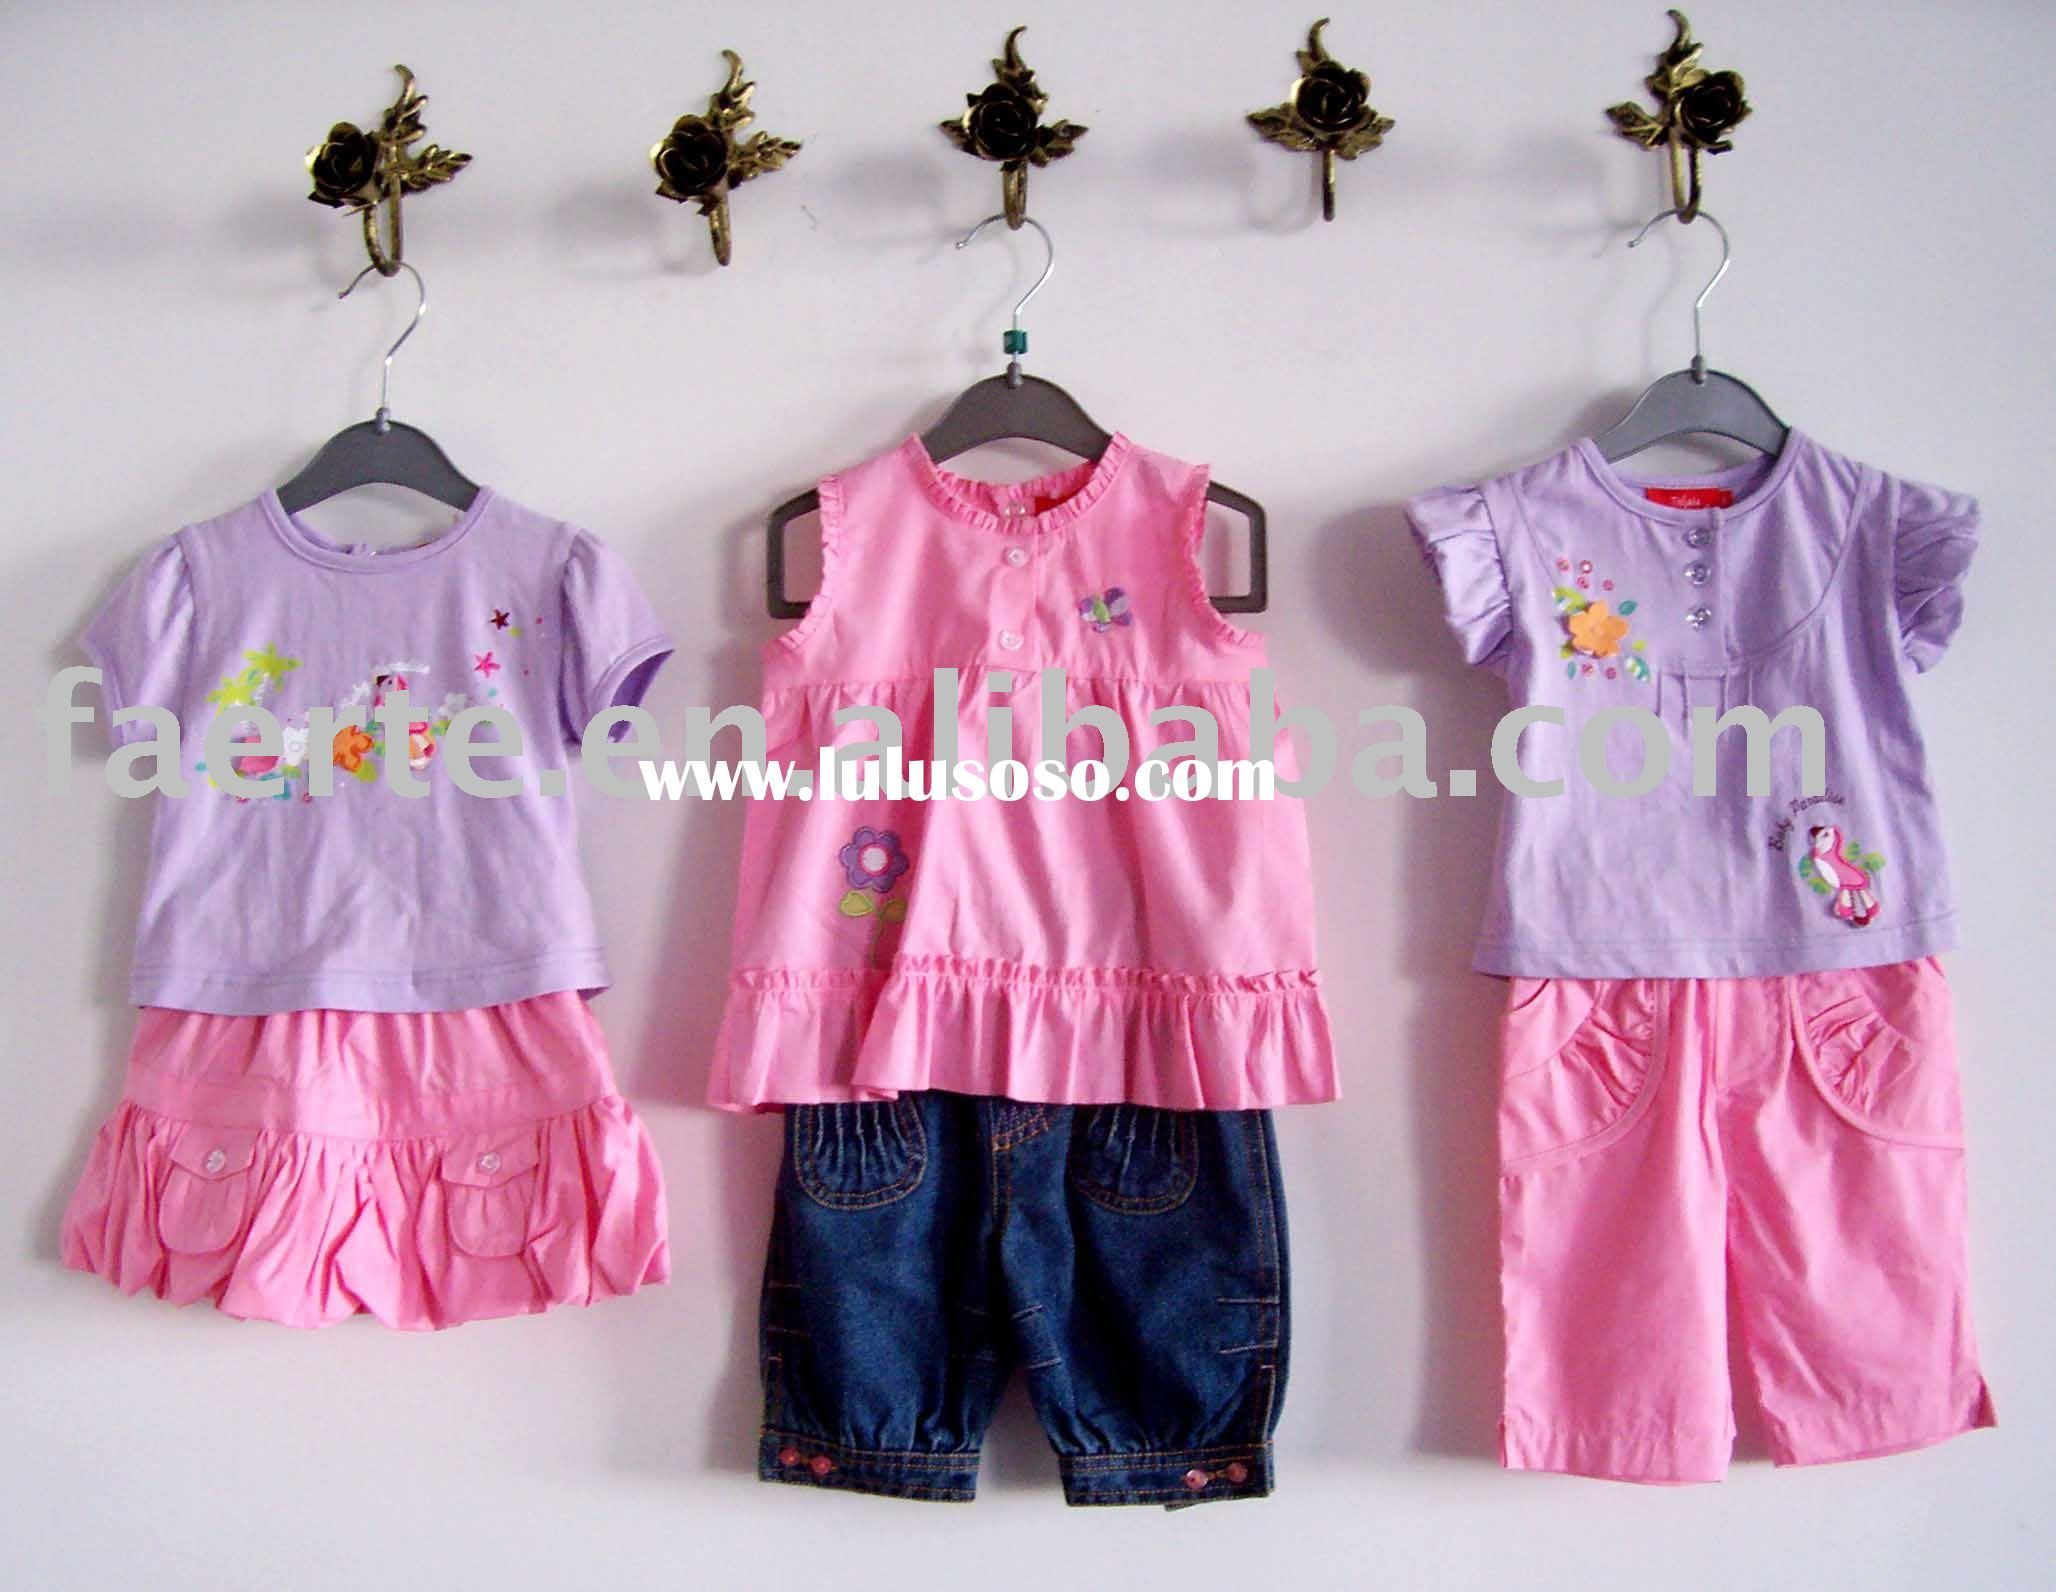 cotton baby shirt cotton baby shirt Manufacturers in LuLuSoSo